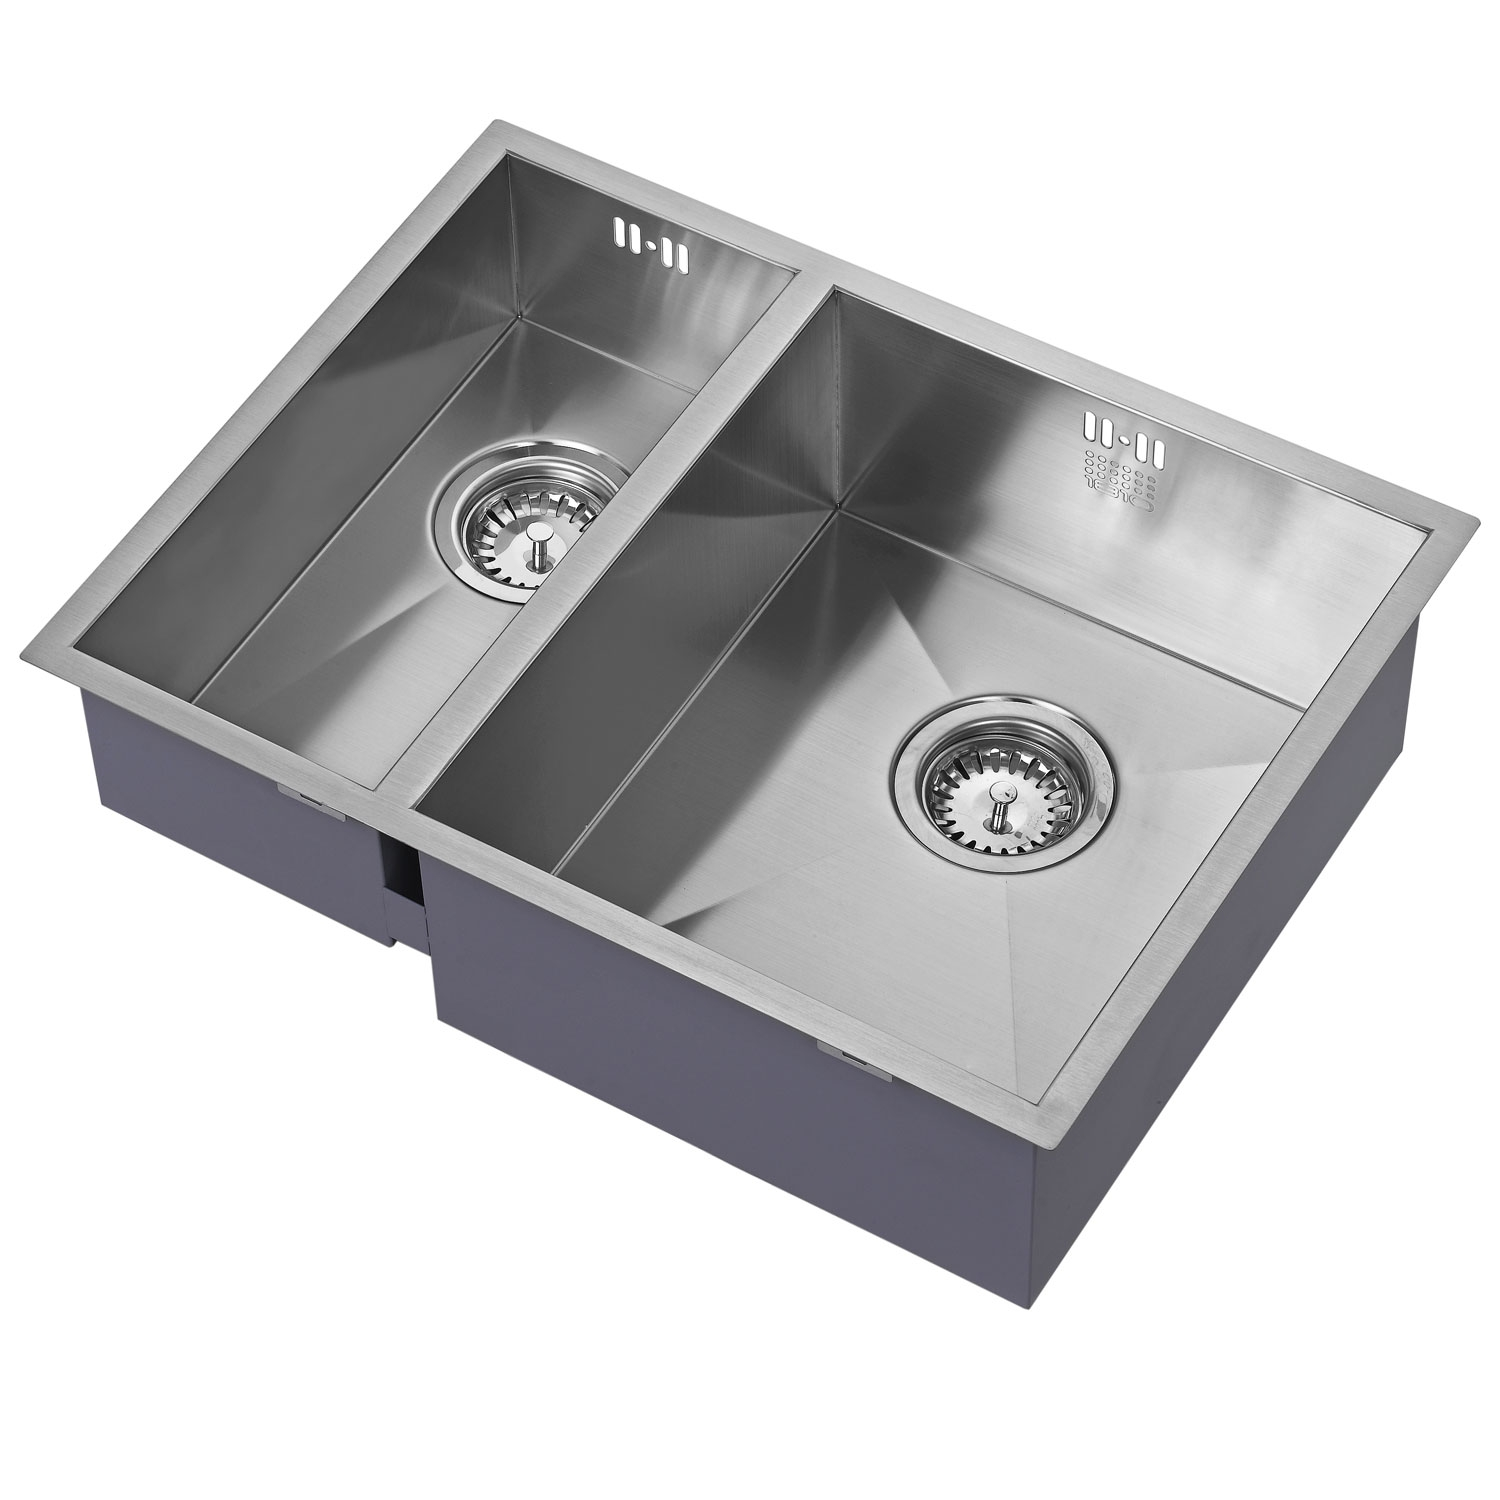 The 1810 Company Zenduo 180/340U 1.5 Bowl Kitchen Sink - Right Handed